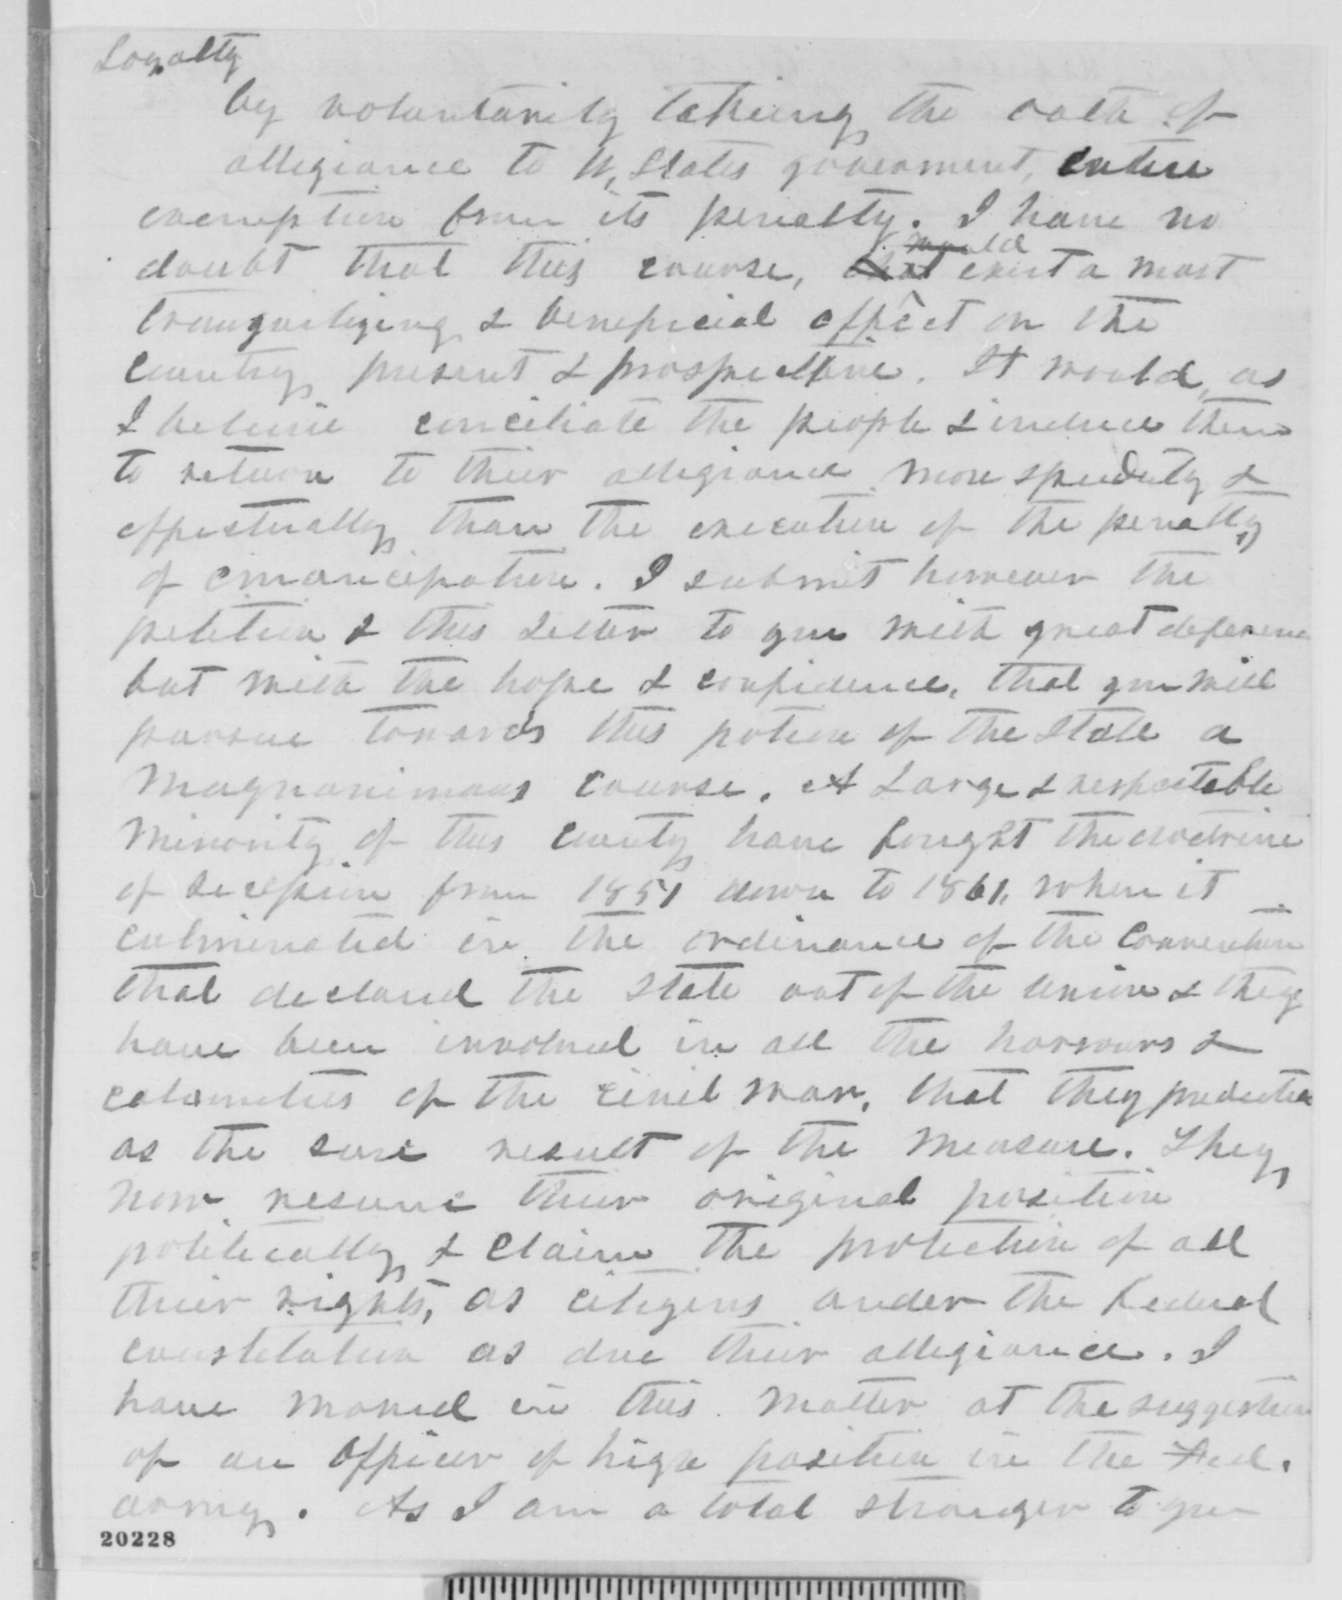 Richard H. Parham Sr. to Abraham Lincoln, Tuesday, December 16, 1862  (Emancipation Proclamation and affairs in Mississippi)